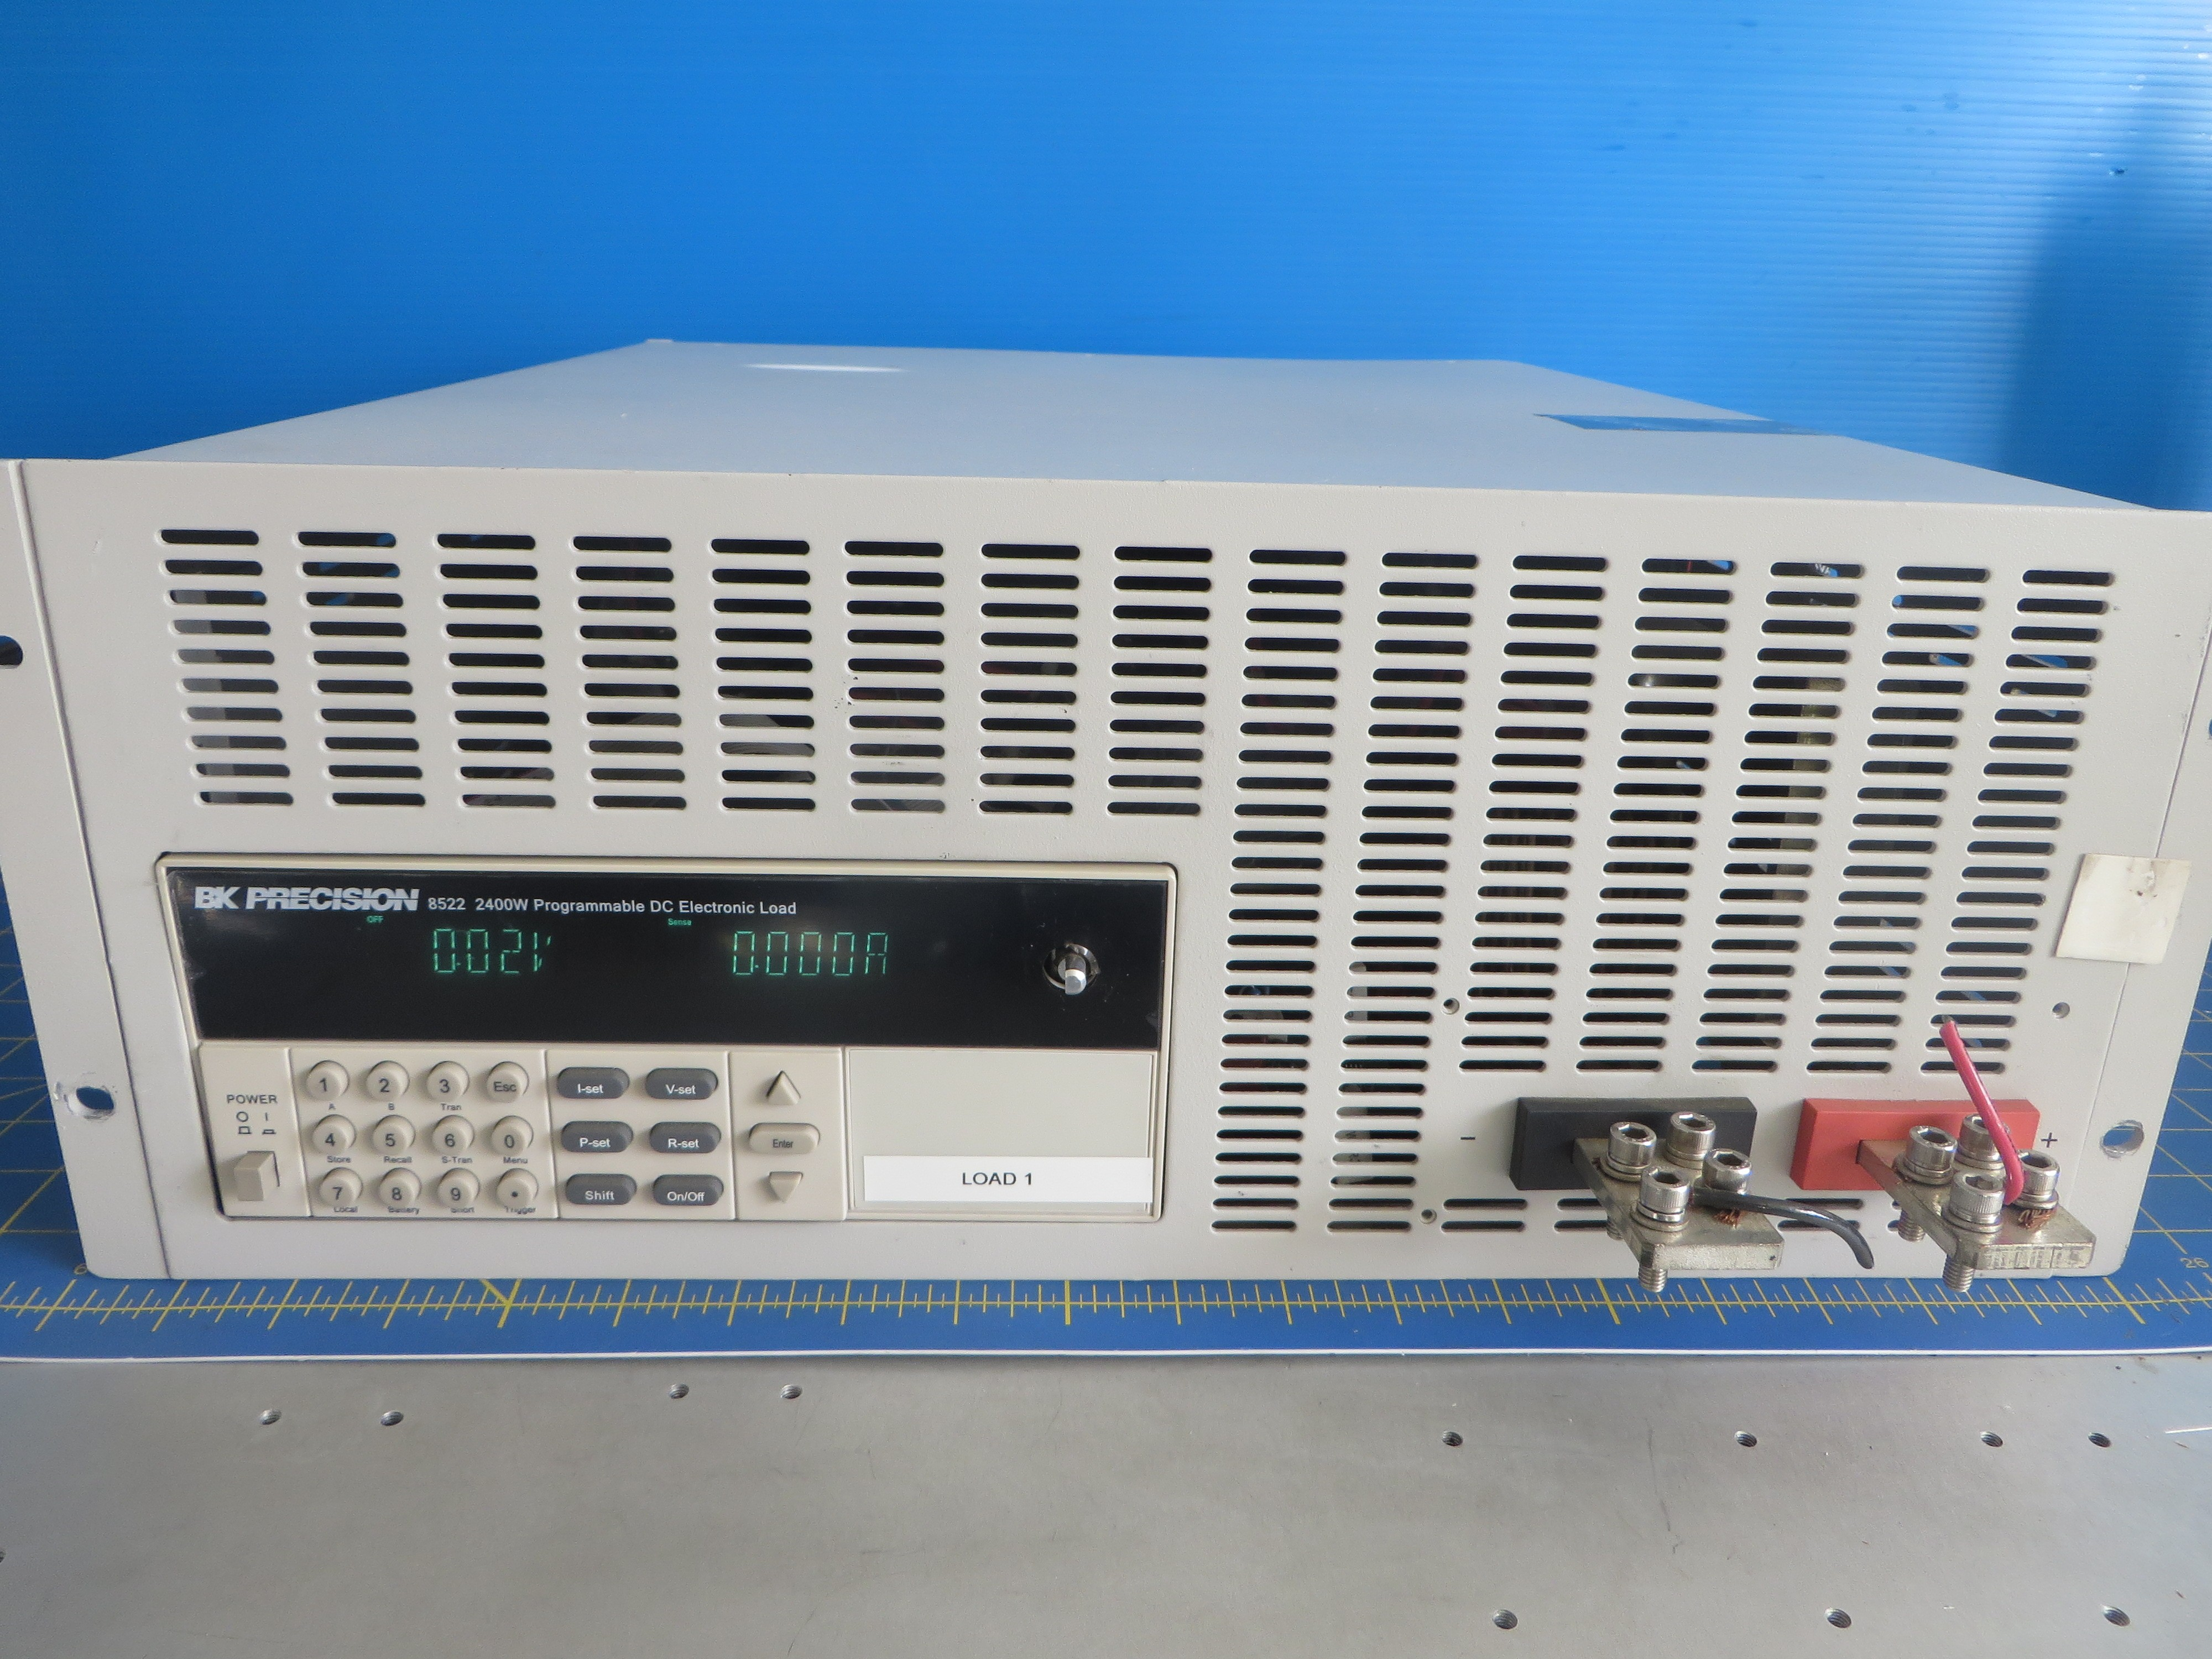 BK Precision 8522 Programmable DC Electronic Load Generator 2400W 120A